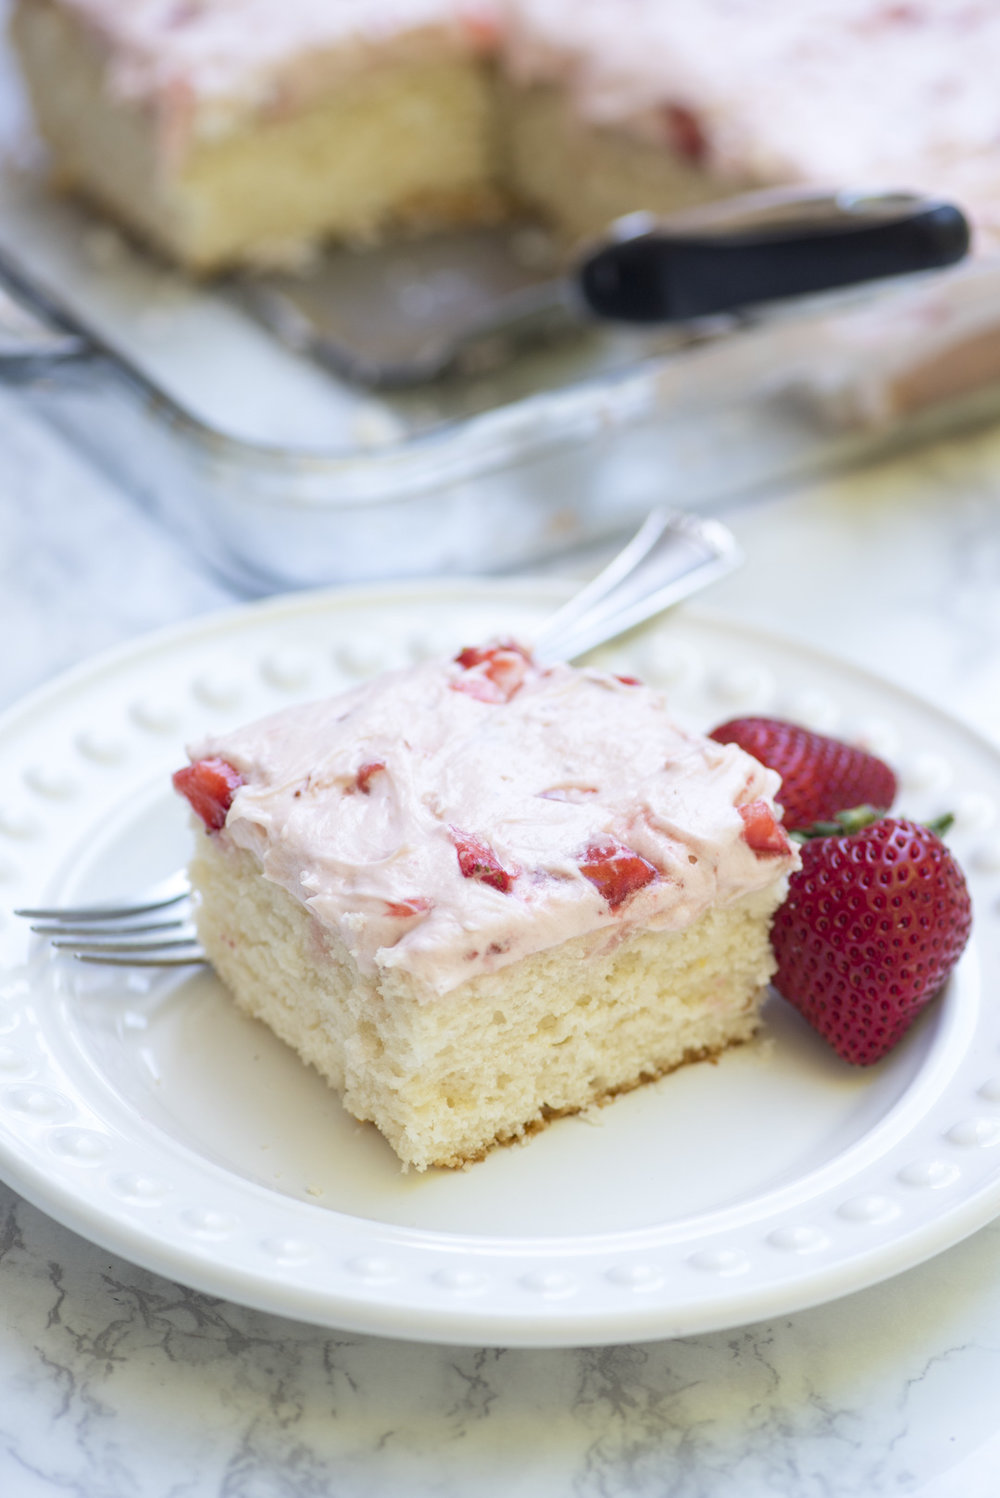 7UP STRAWBERRY CAKE